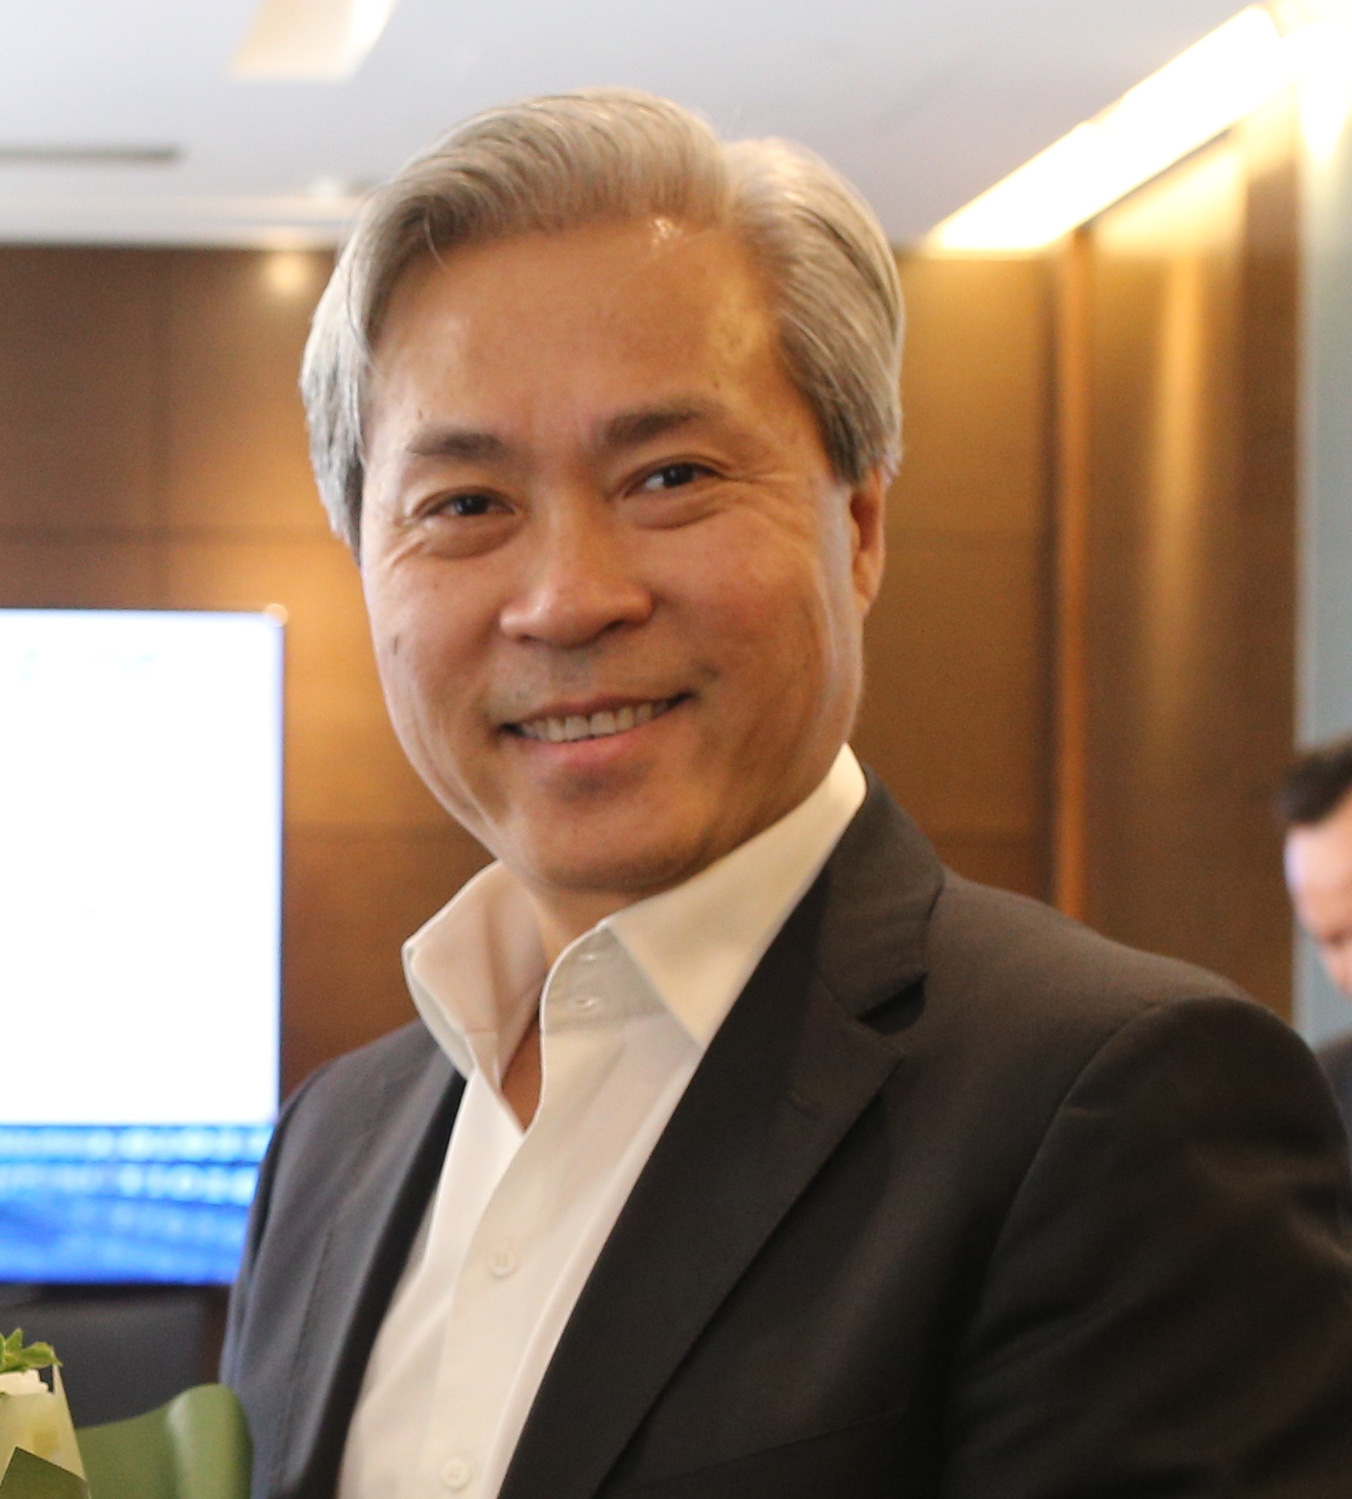 Don Lam, co-founder and CEO of VinaCapital, is seen in this file photo.